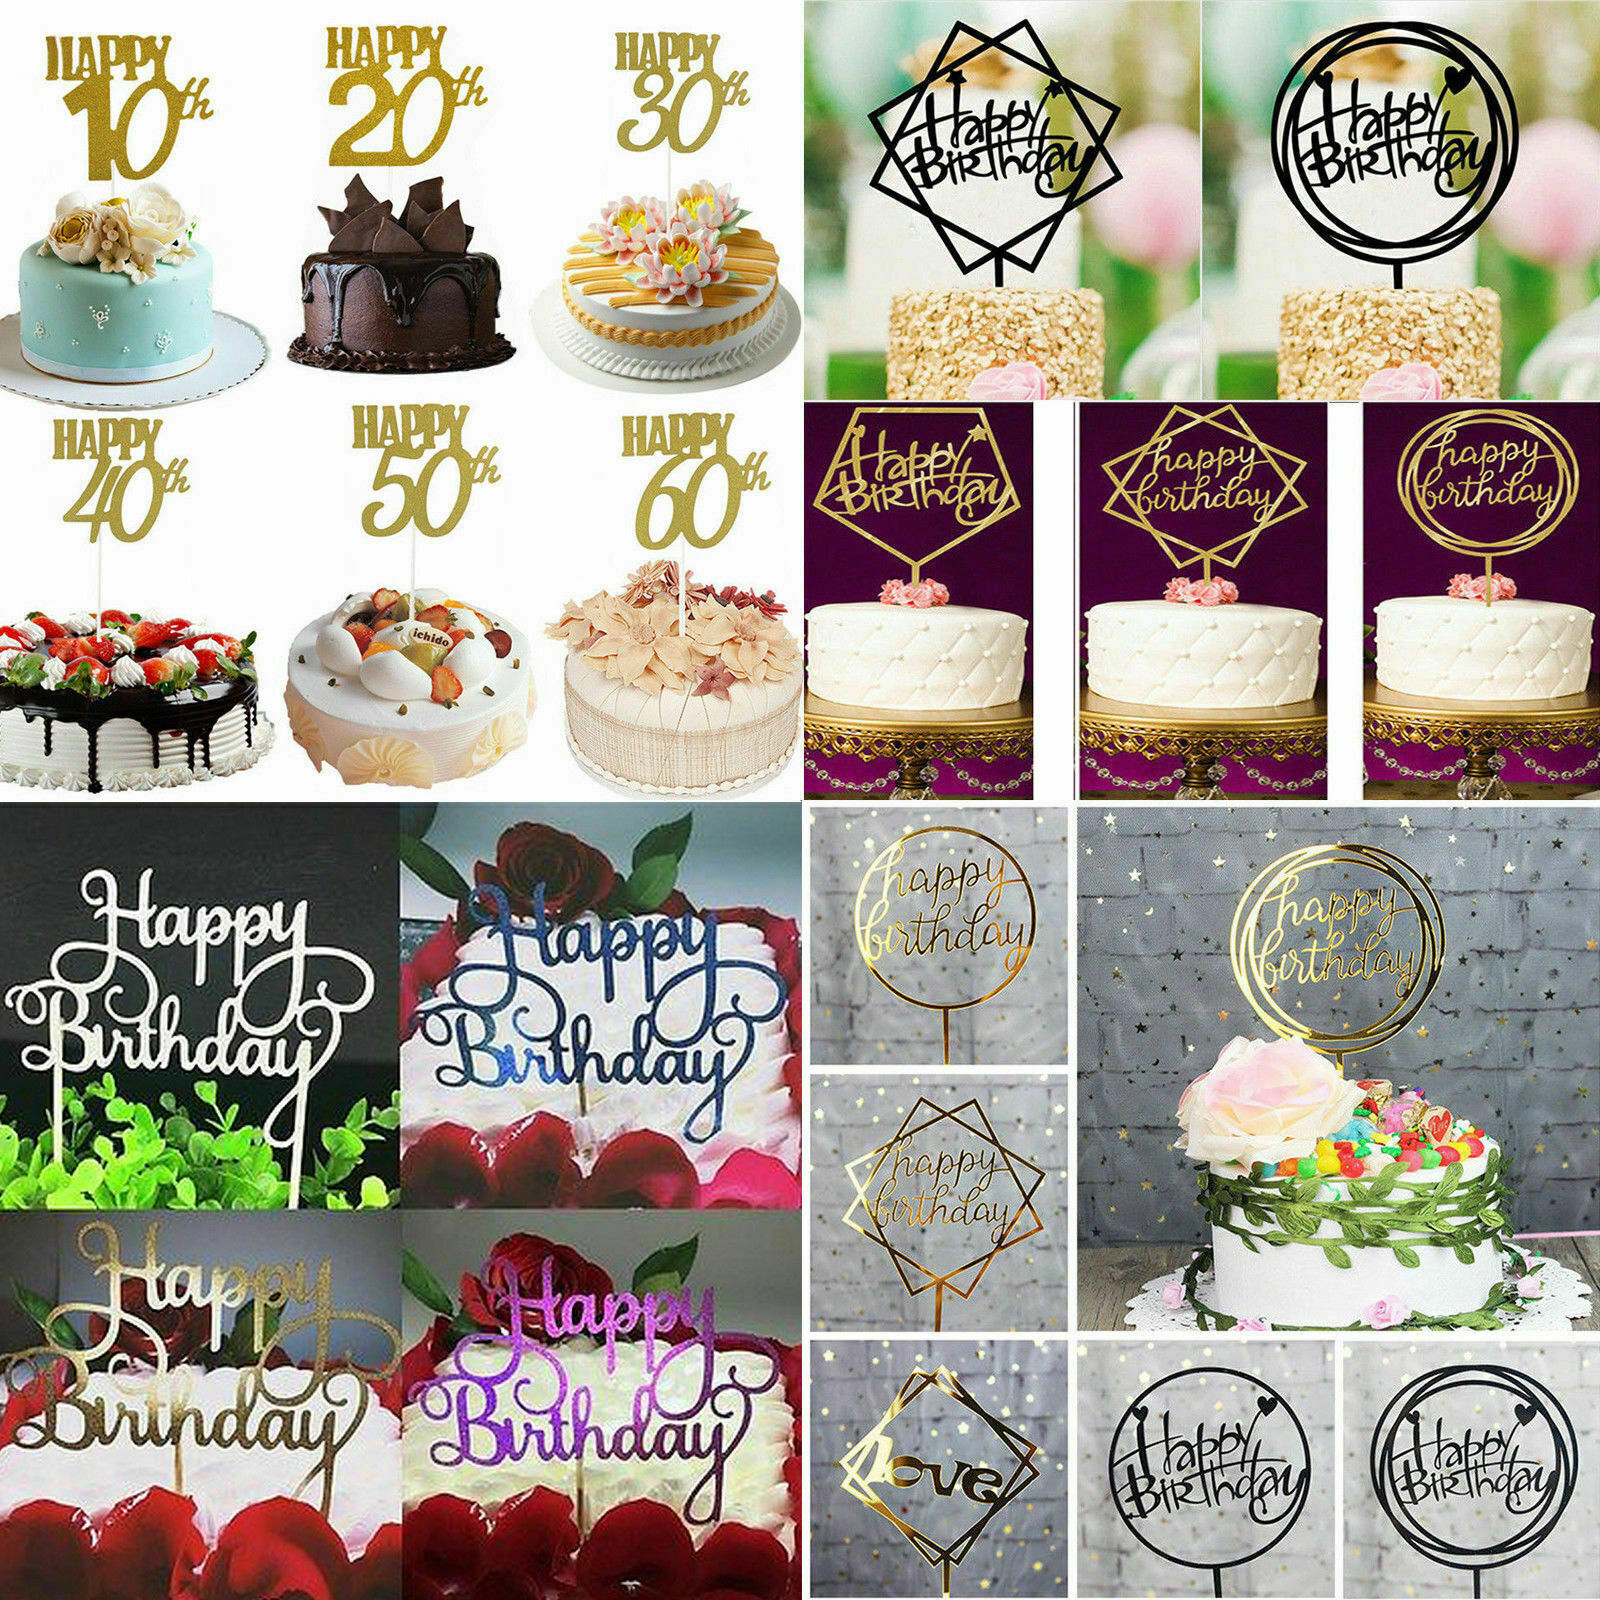 Happy Birthday Cake Topper Glitter Calligraphy Bling Sparkle Decoration Party